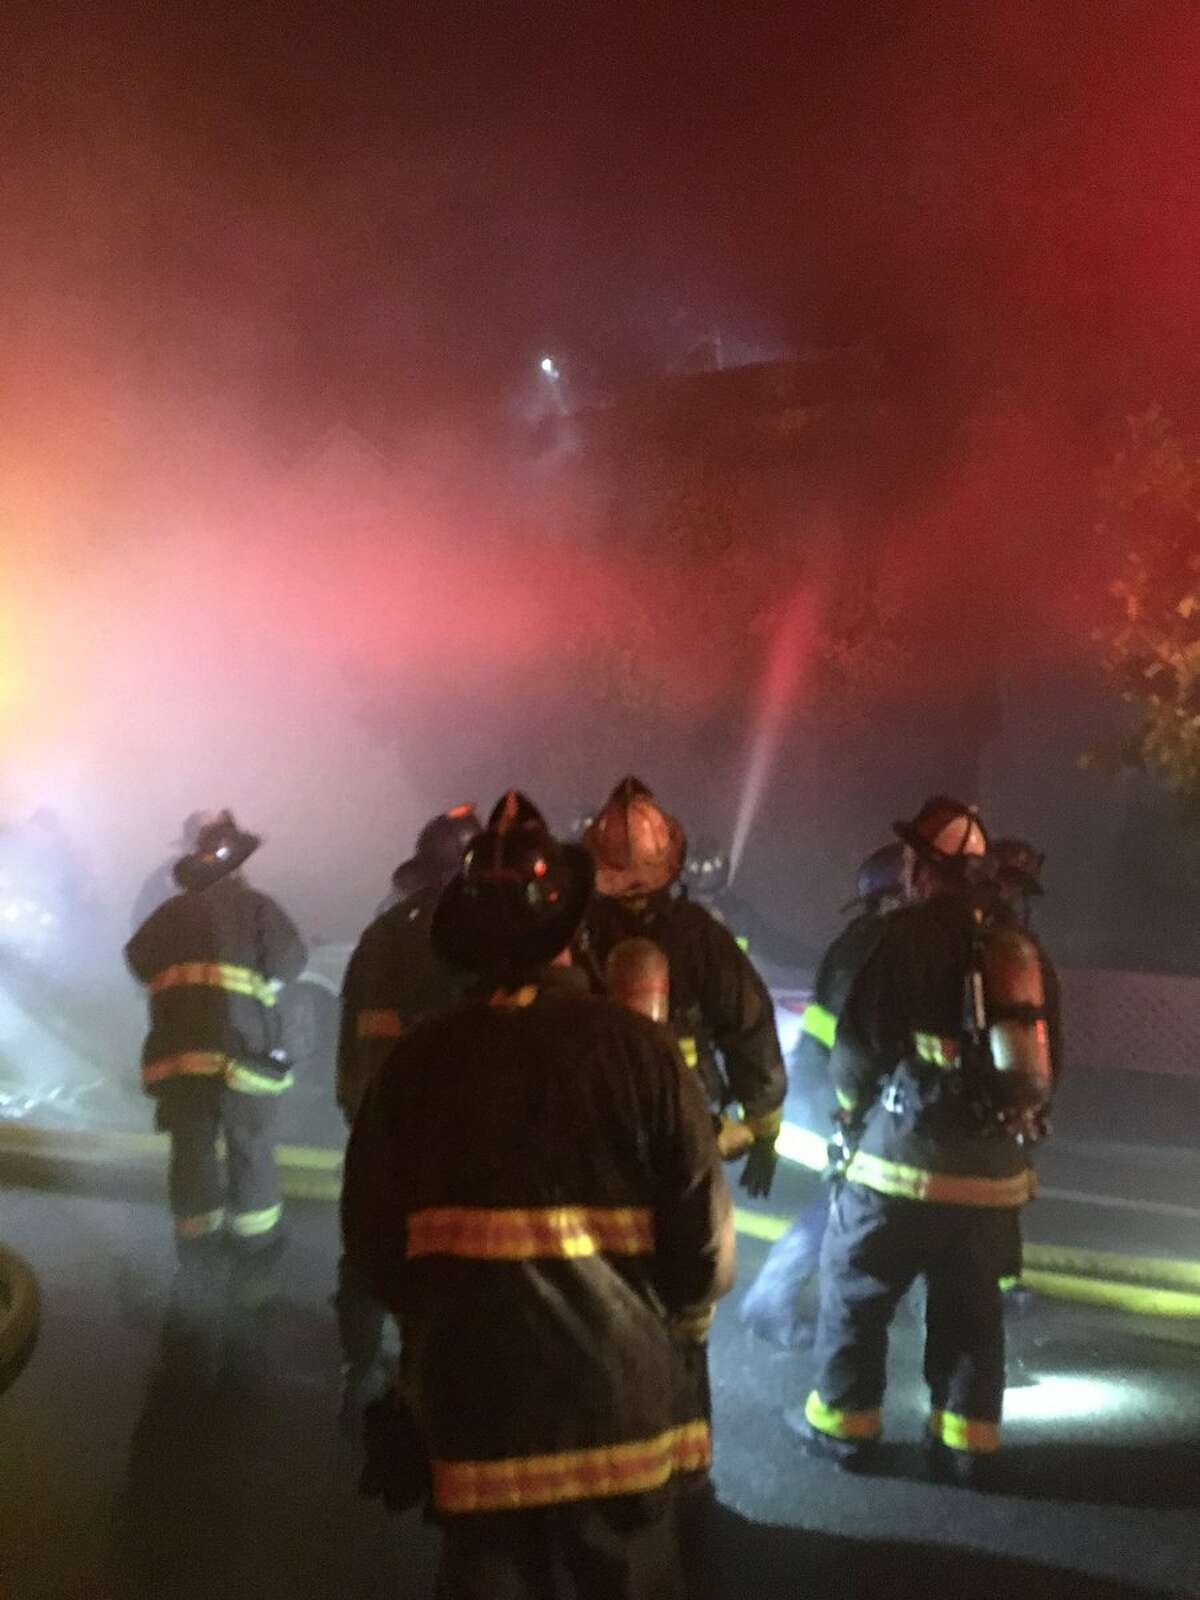 One person was killed in a house fire in San Francisco early Sunday morning.